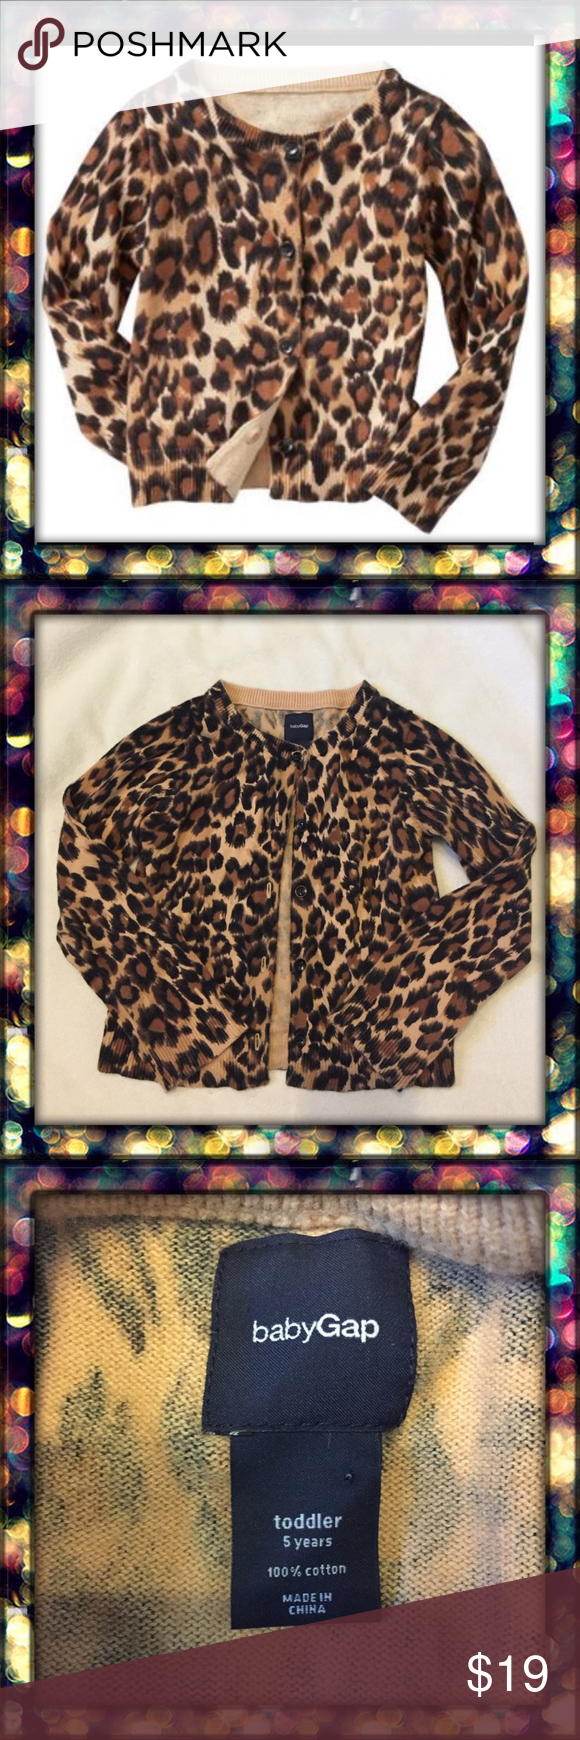 🚫SOLD🚫Gap Leopard Cardigan